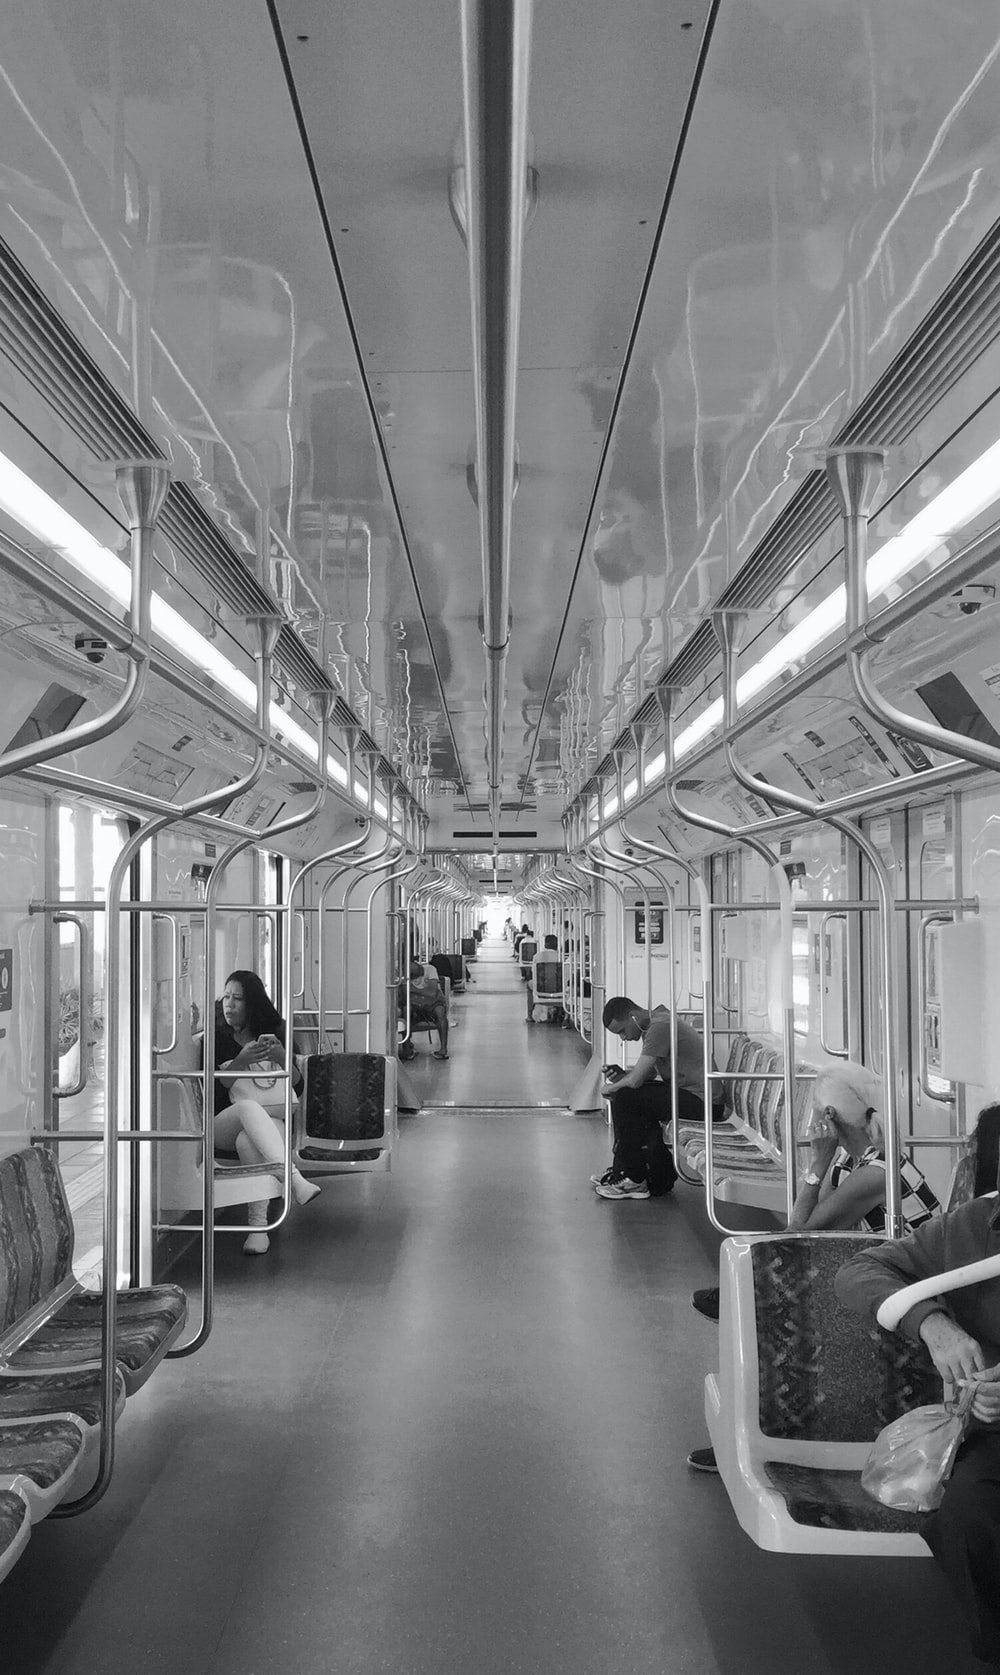 grayscale photography of few people inside train